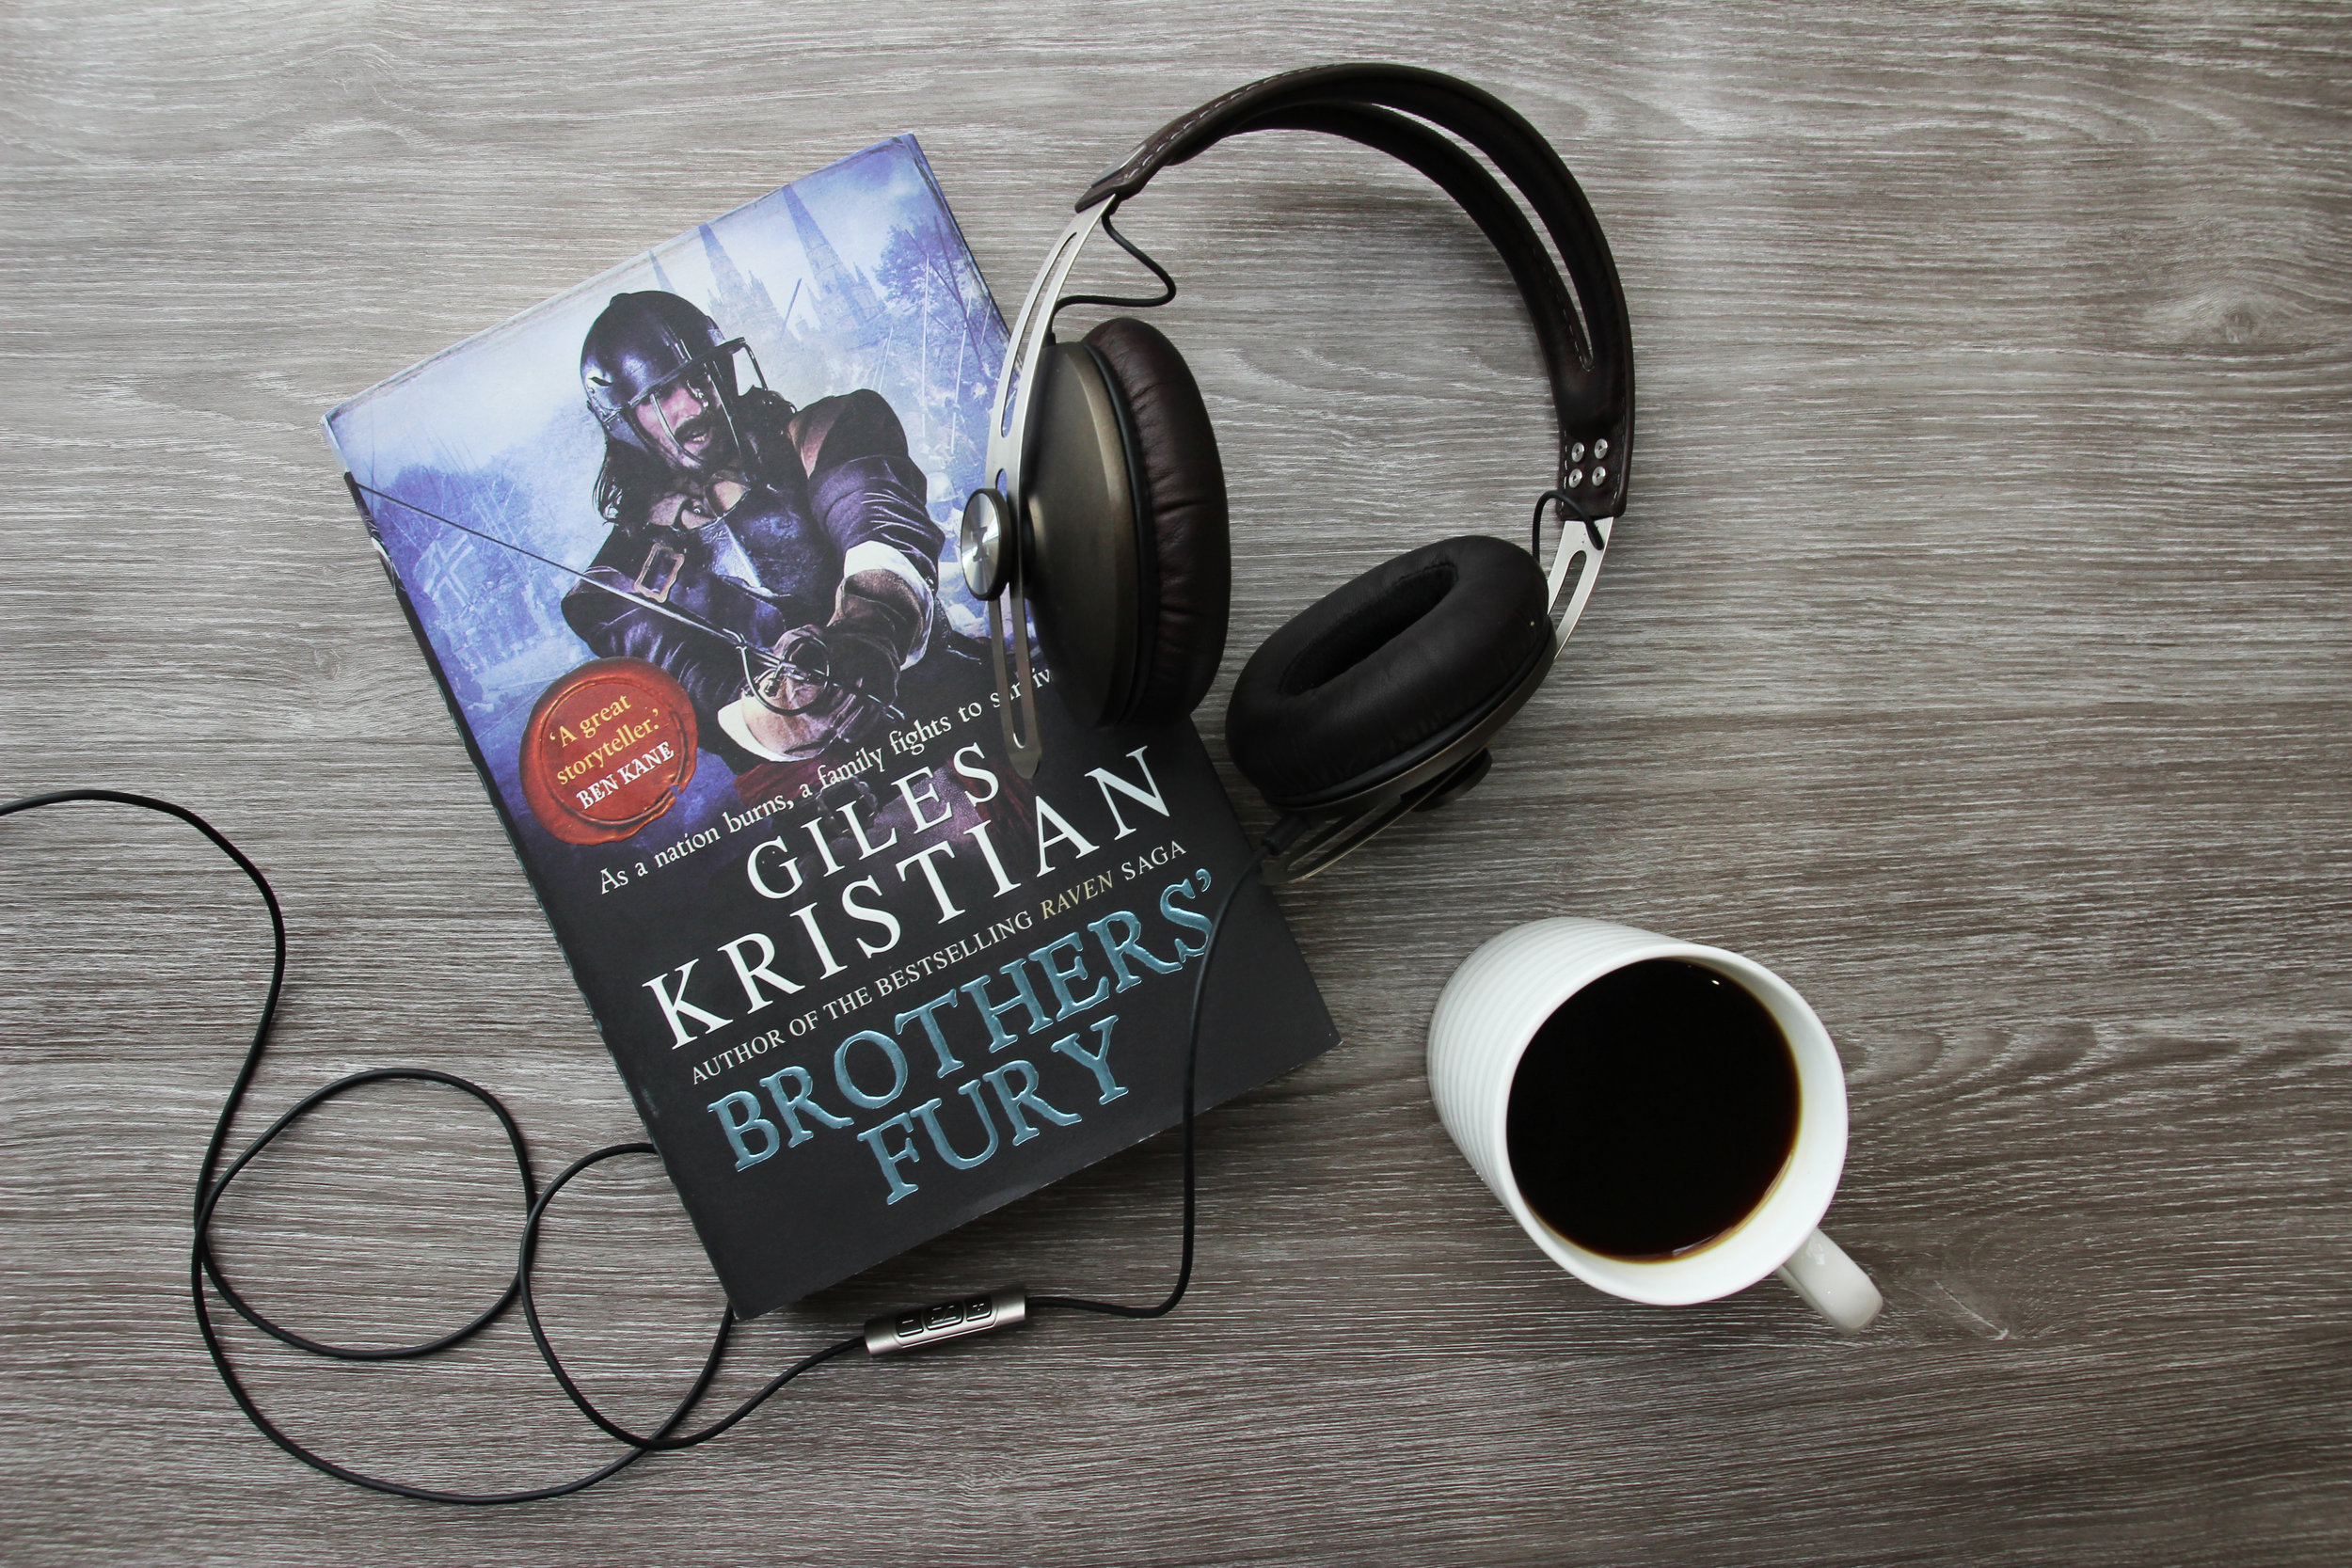 Brothers' Fury by historic author Giles Kristian